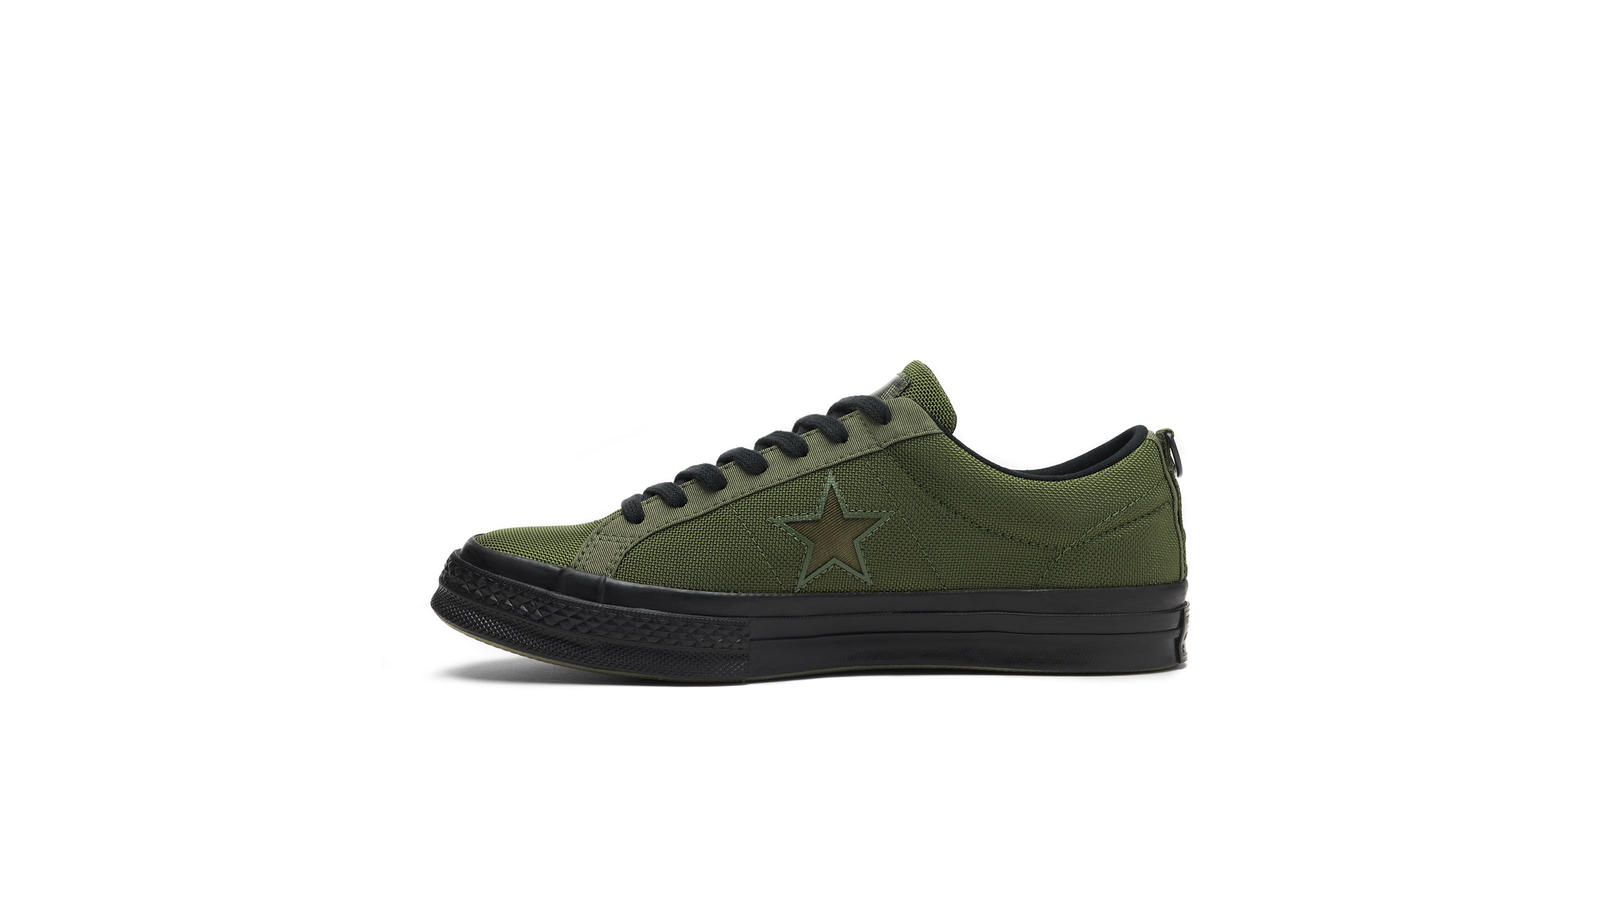 Converse x Carhartt WIP One Star Collection Nike News